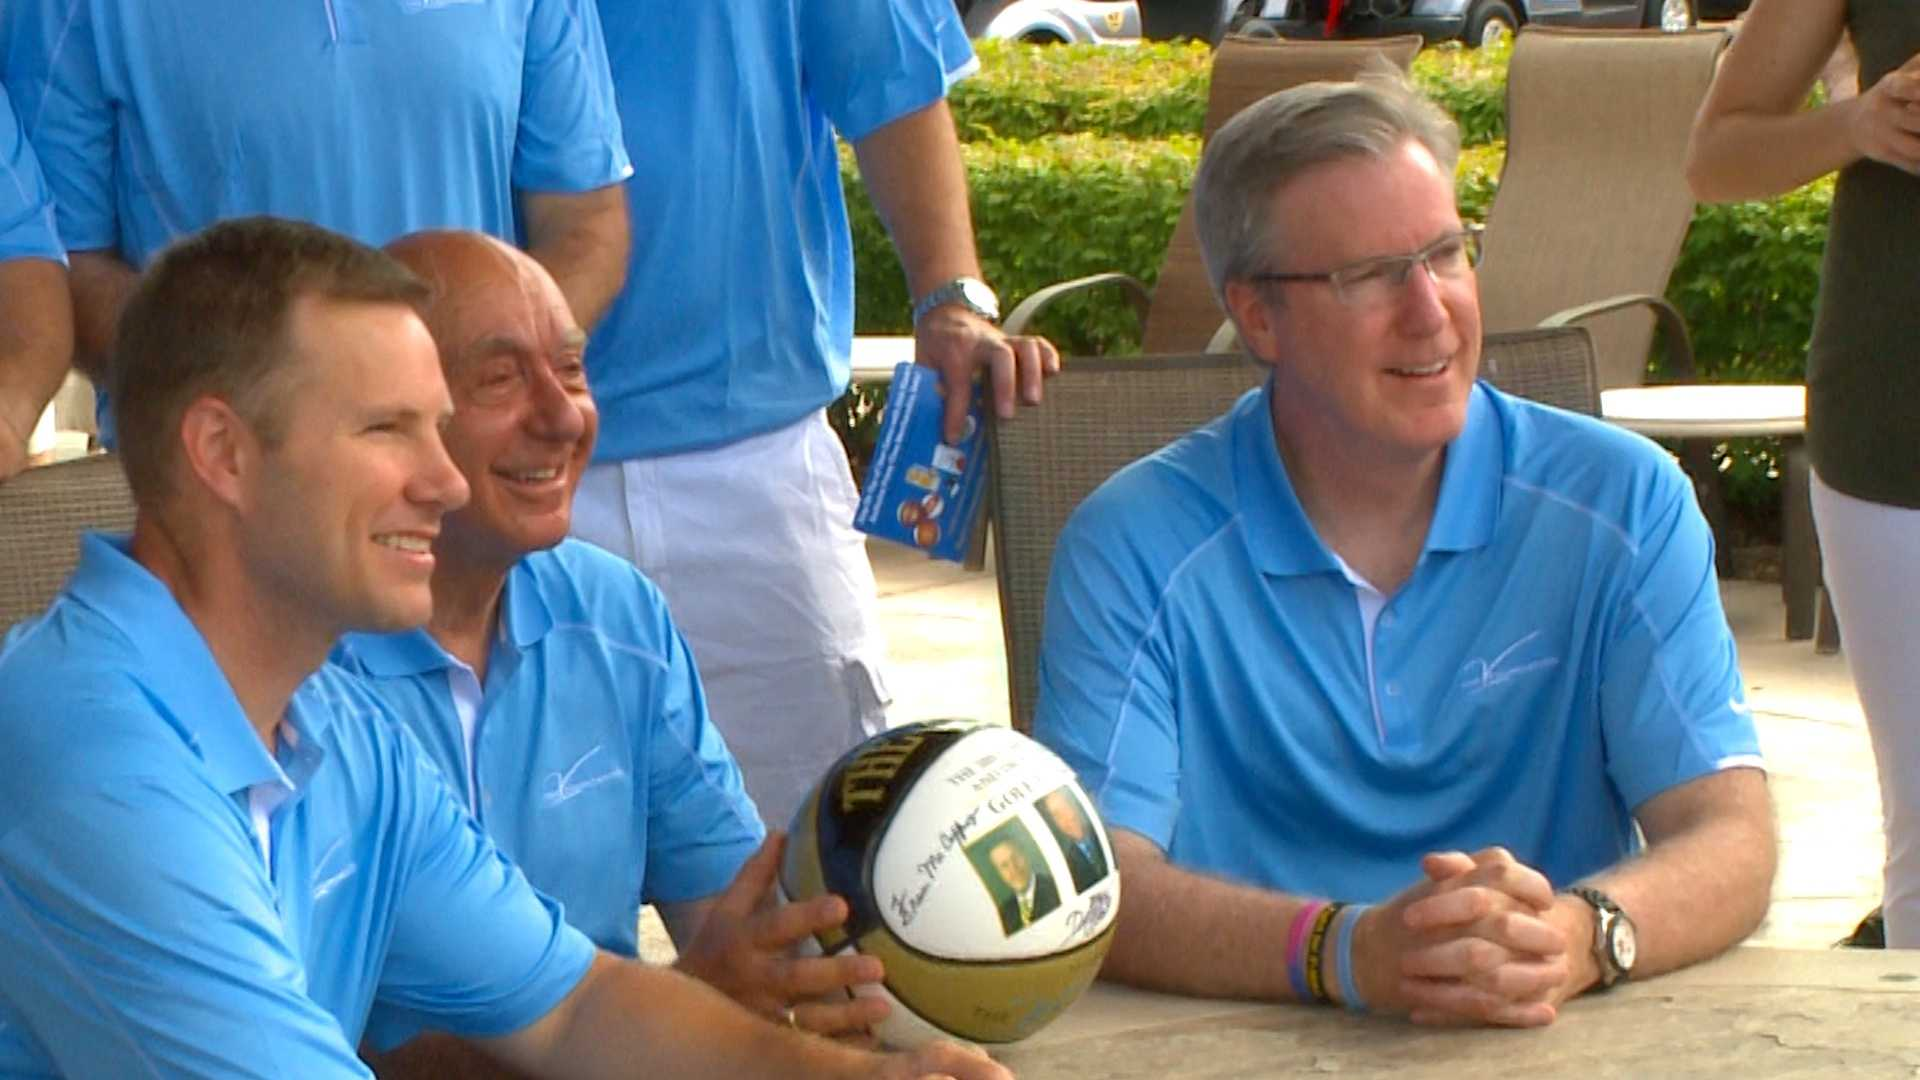 McCaffery, Vitale, and Hoiberg attend Cancer fundraising event